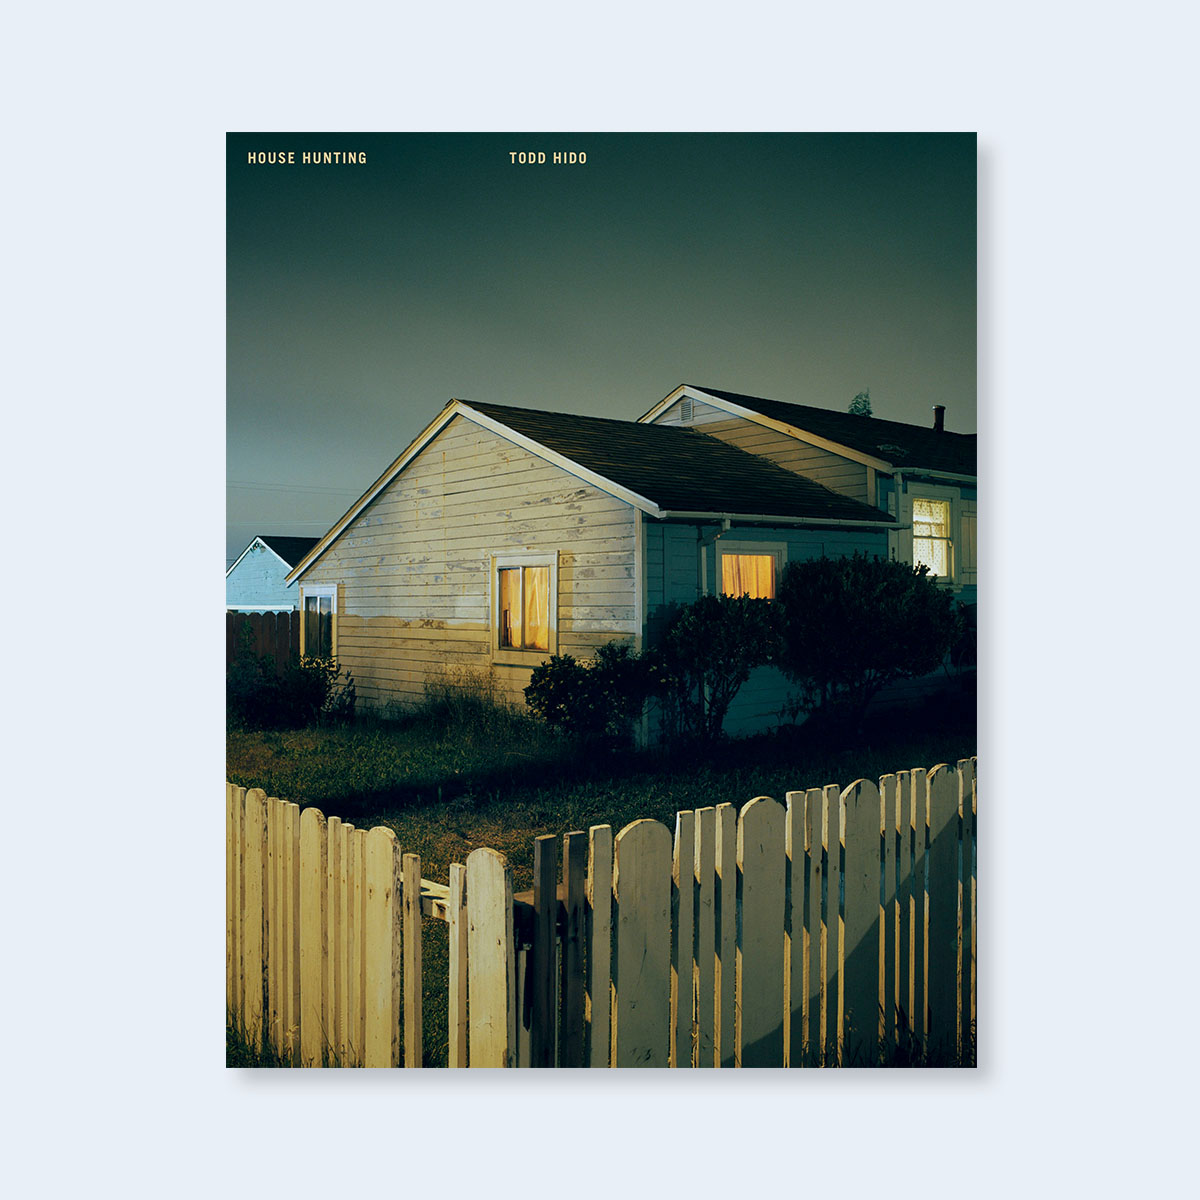 TODD HIDO | House Hunting (Regular Edition) |  Order >